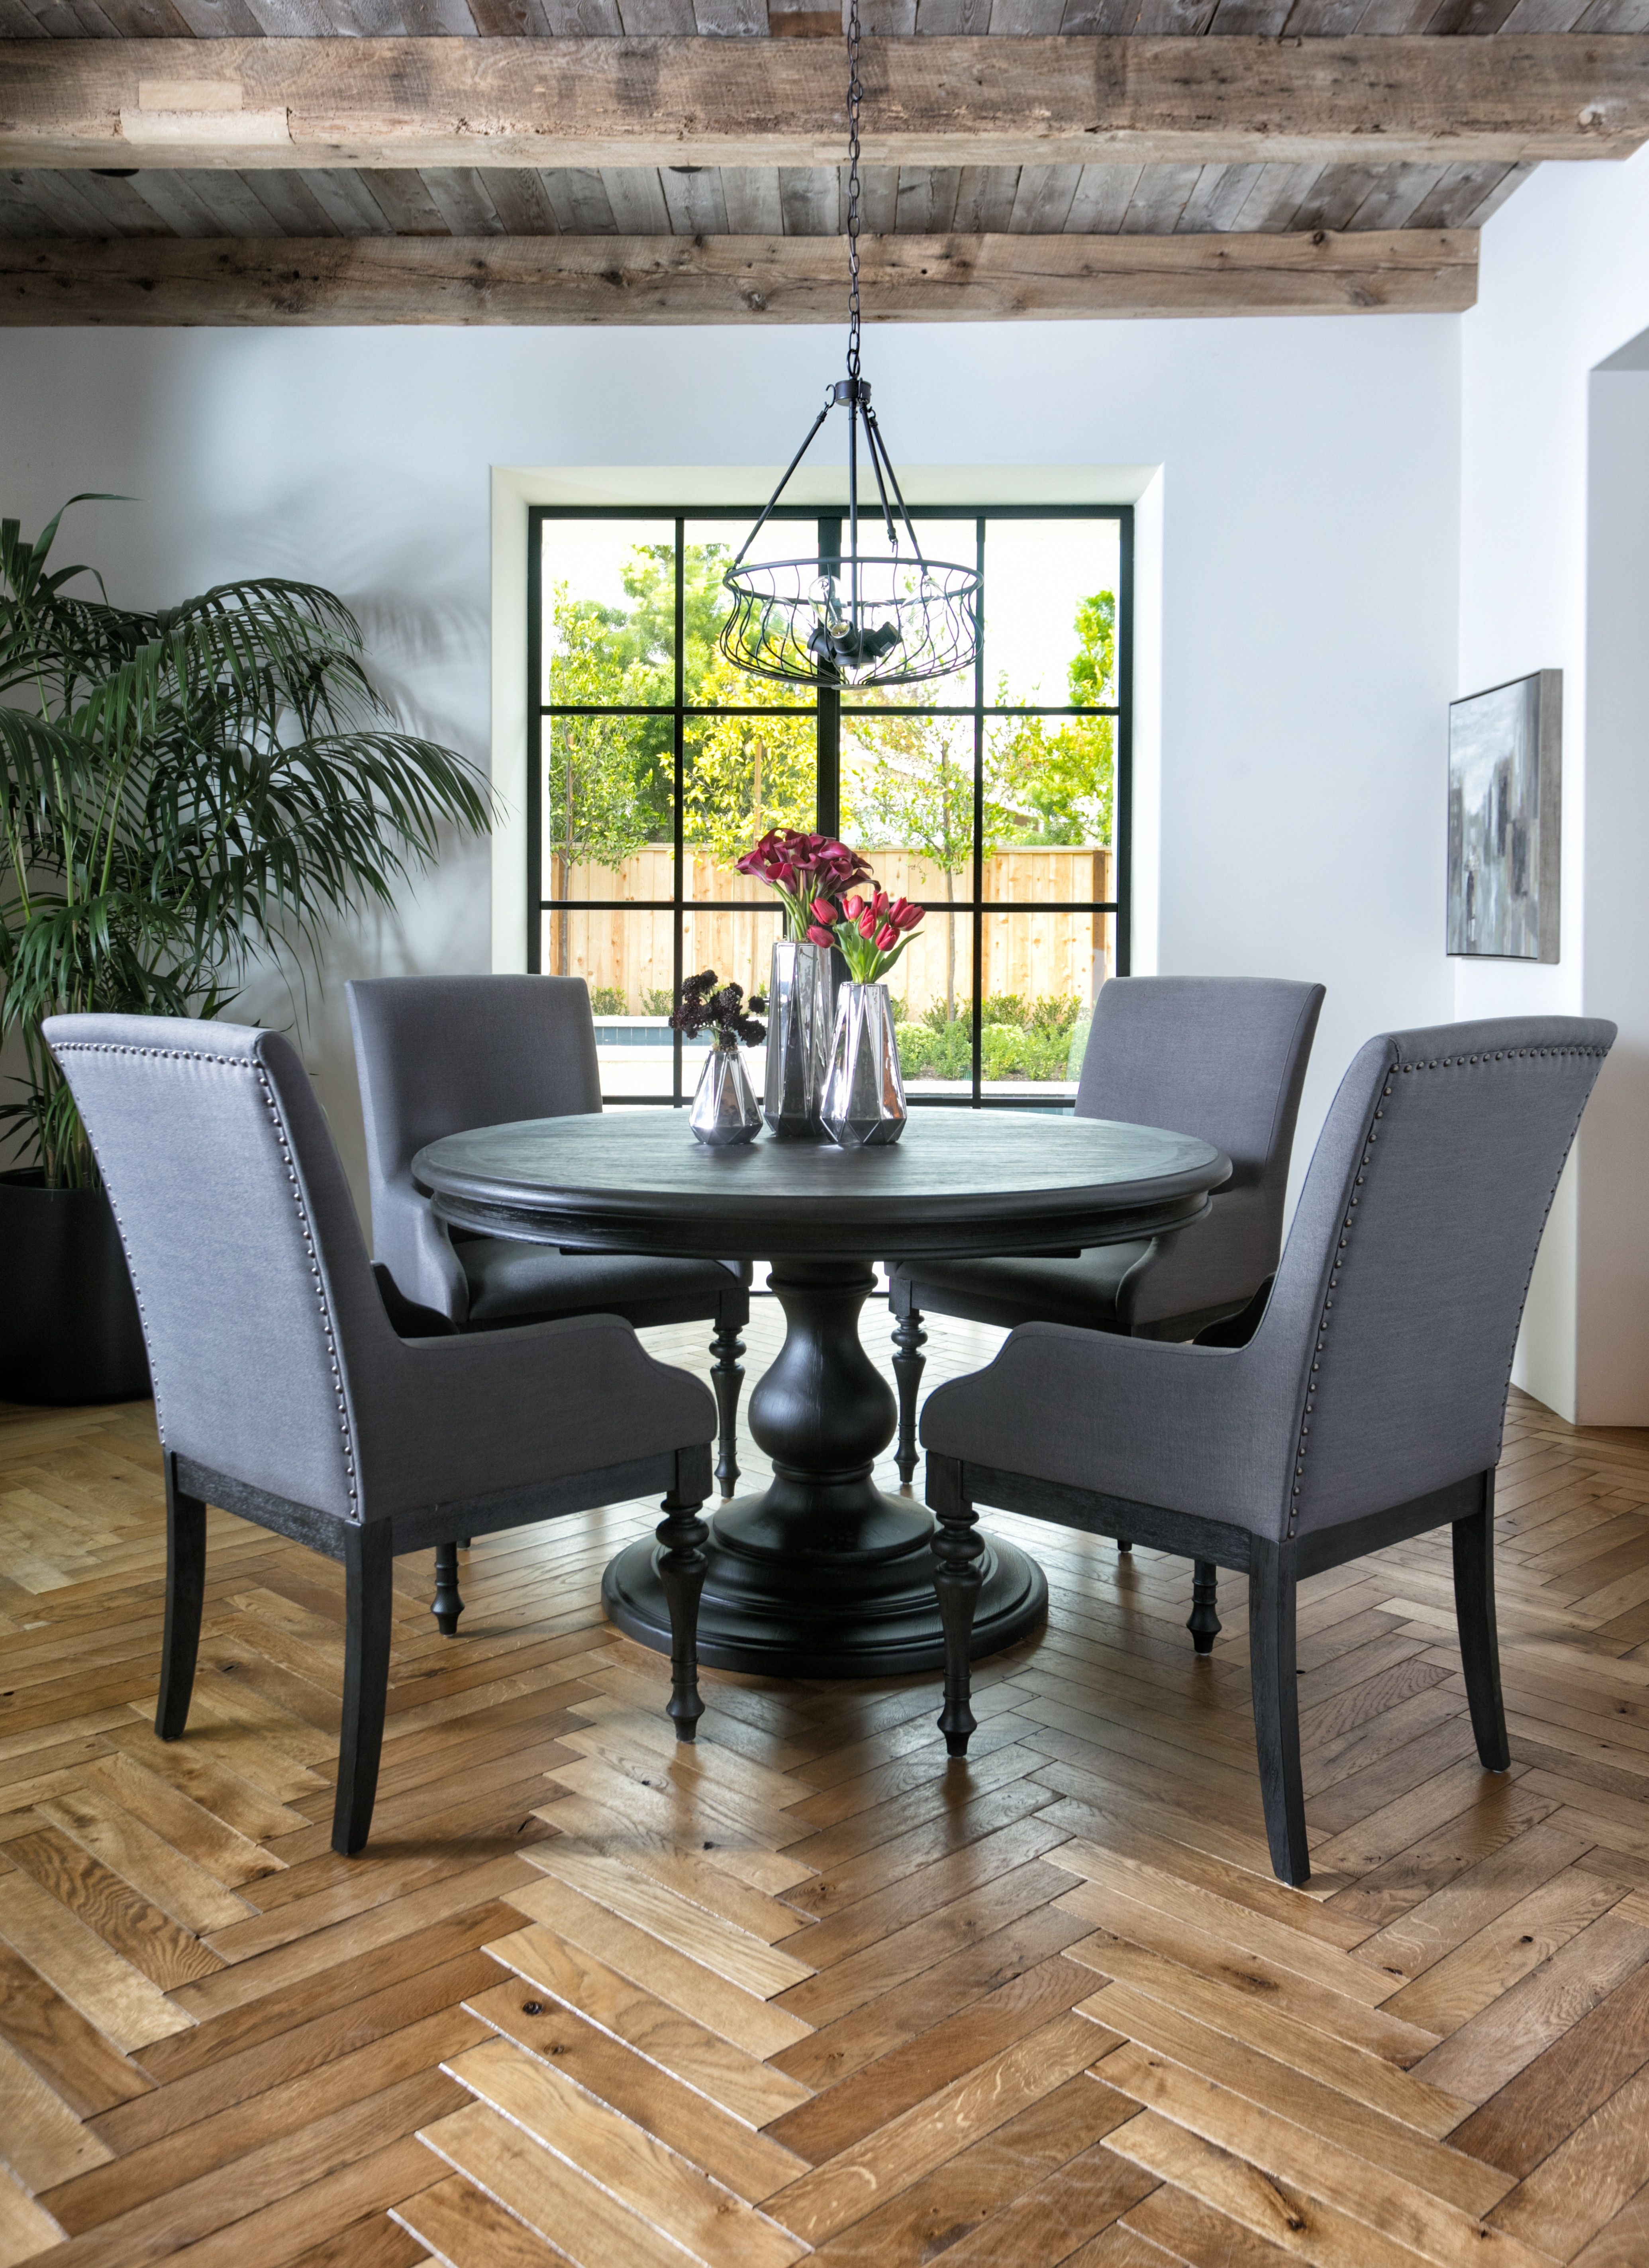 Caira Black Upholstered Diamond Back Side Chairs Within Most Recently Released Caira Black 5 Piece Round Dining Set With Diamond Back Side Chairs (#7 of 20)